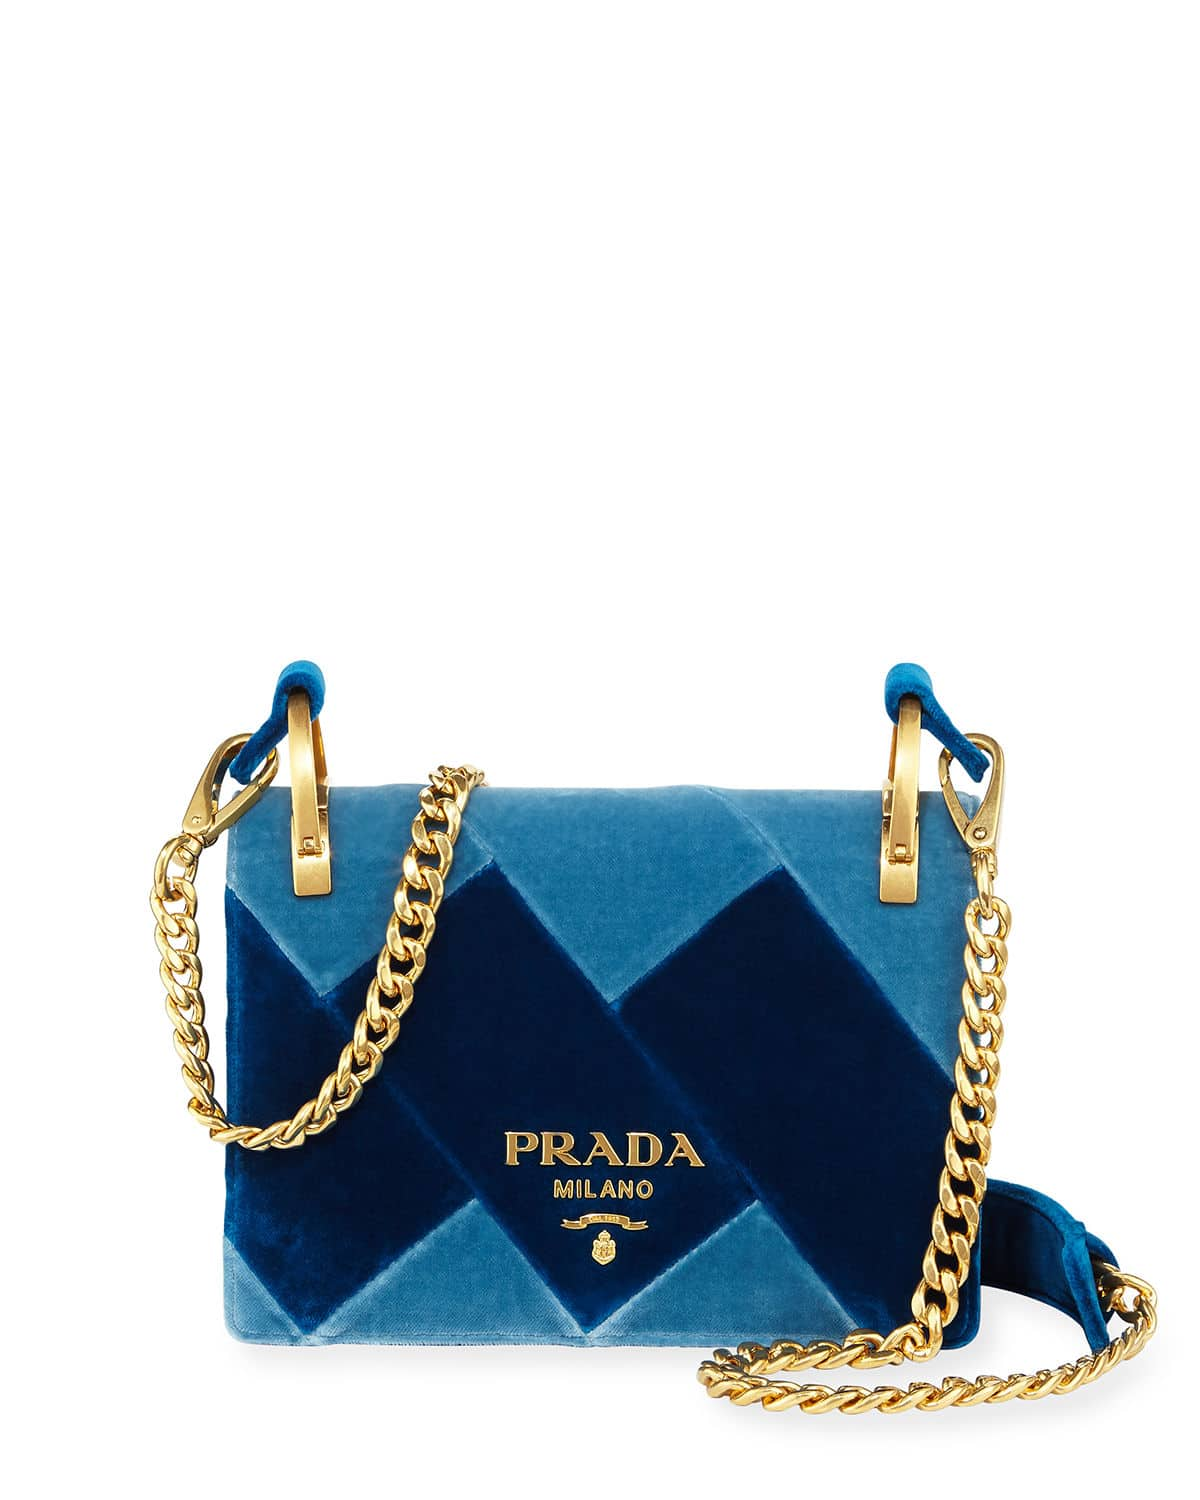 Prada Bags 2017 Prices